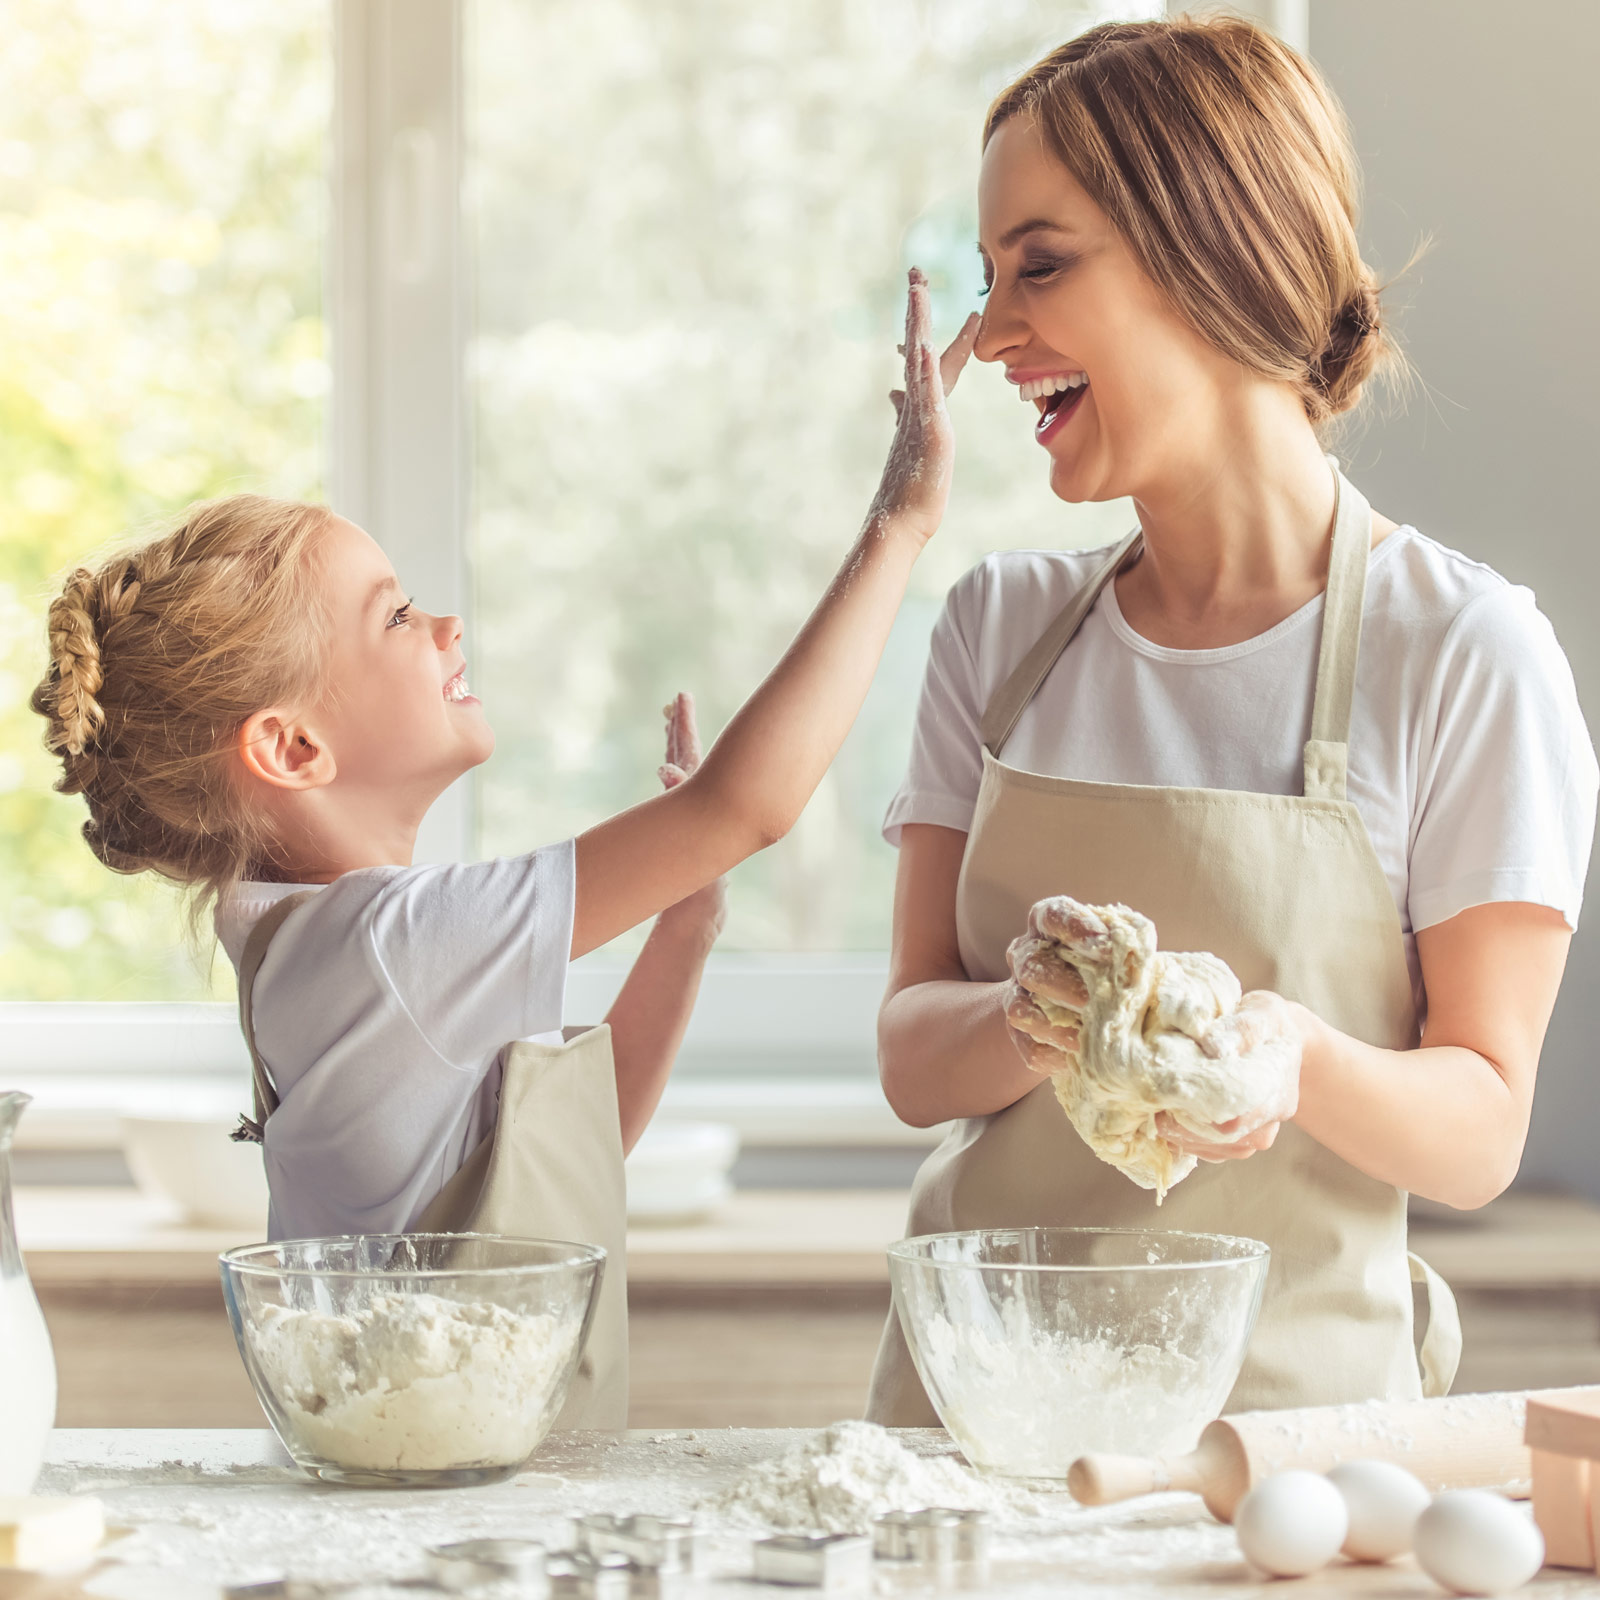 A mother and daughter baking cookies and playing with the ingredients